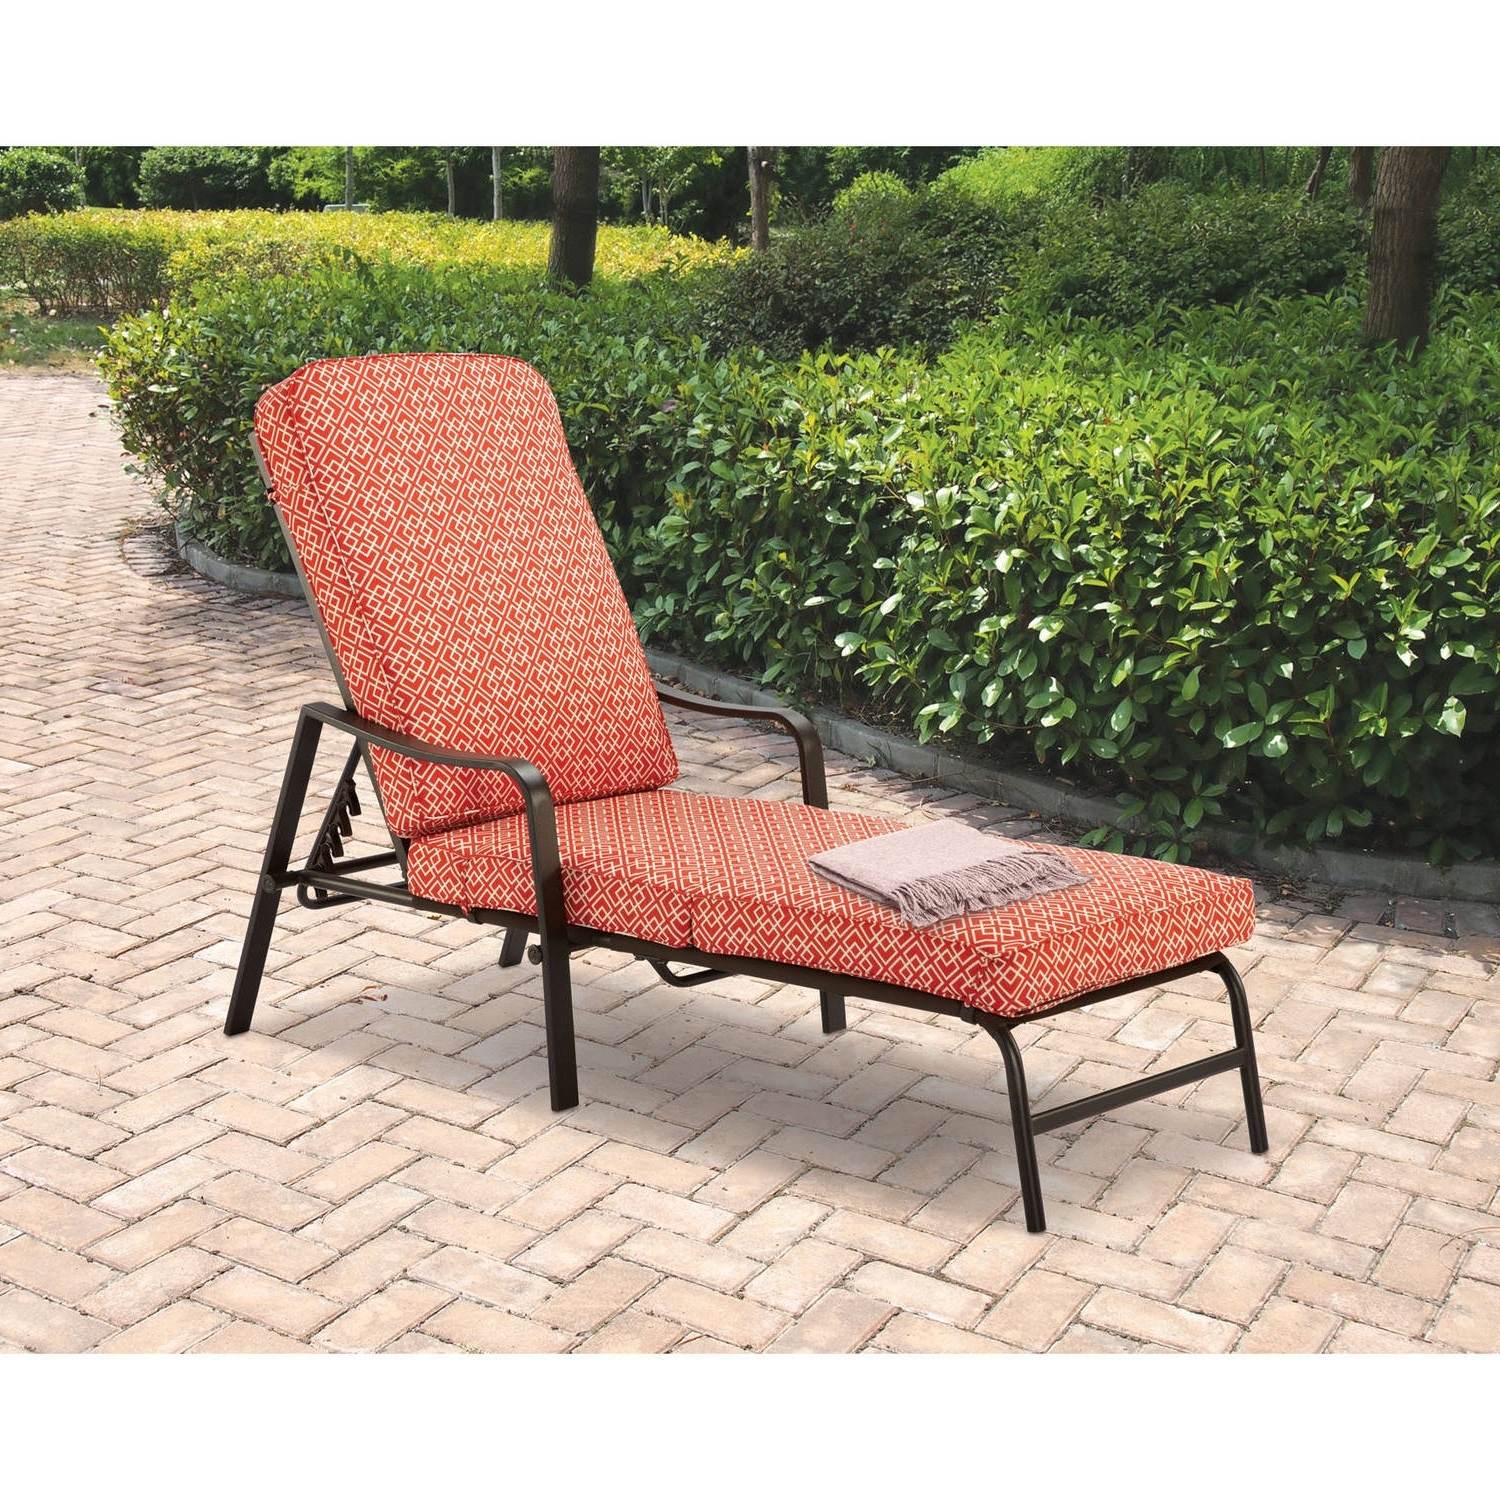 Walmart Chaise Lounges With Regard To Most Recent Mainstays Outdoor Chaise Lounge, Orange Geo Pattern – Walmart (View 10 of 15)